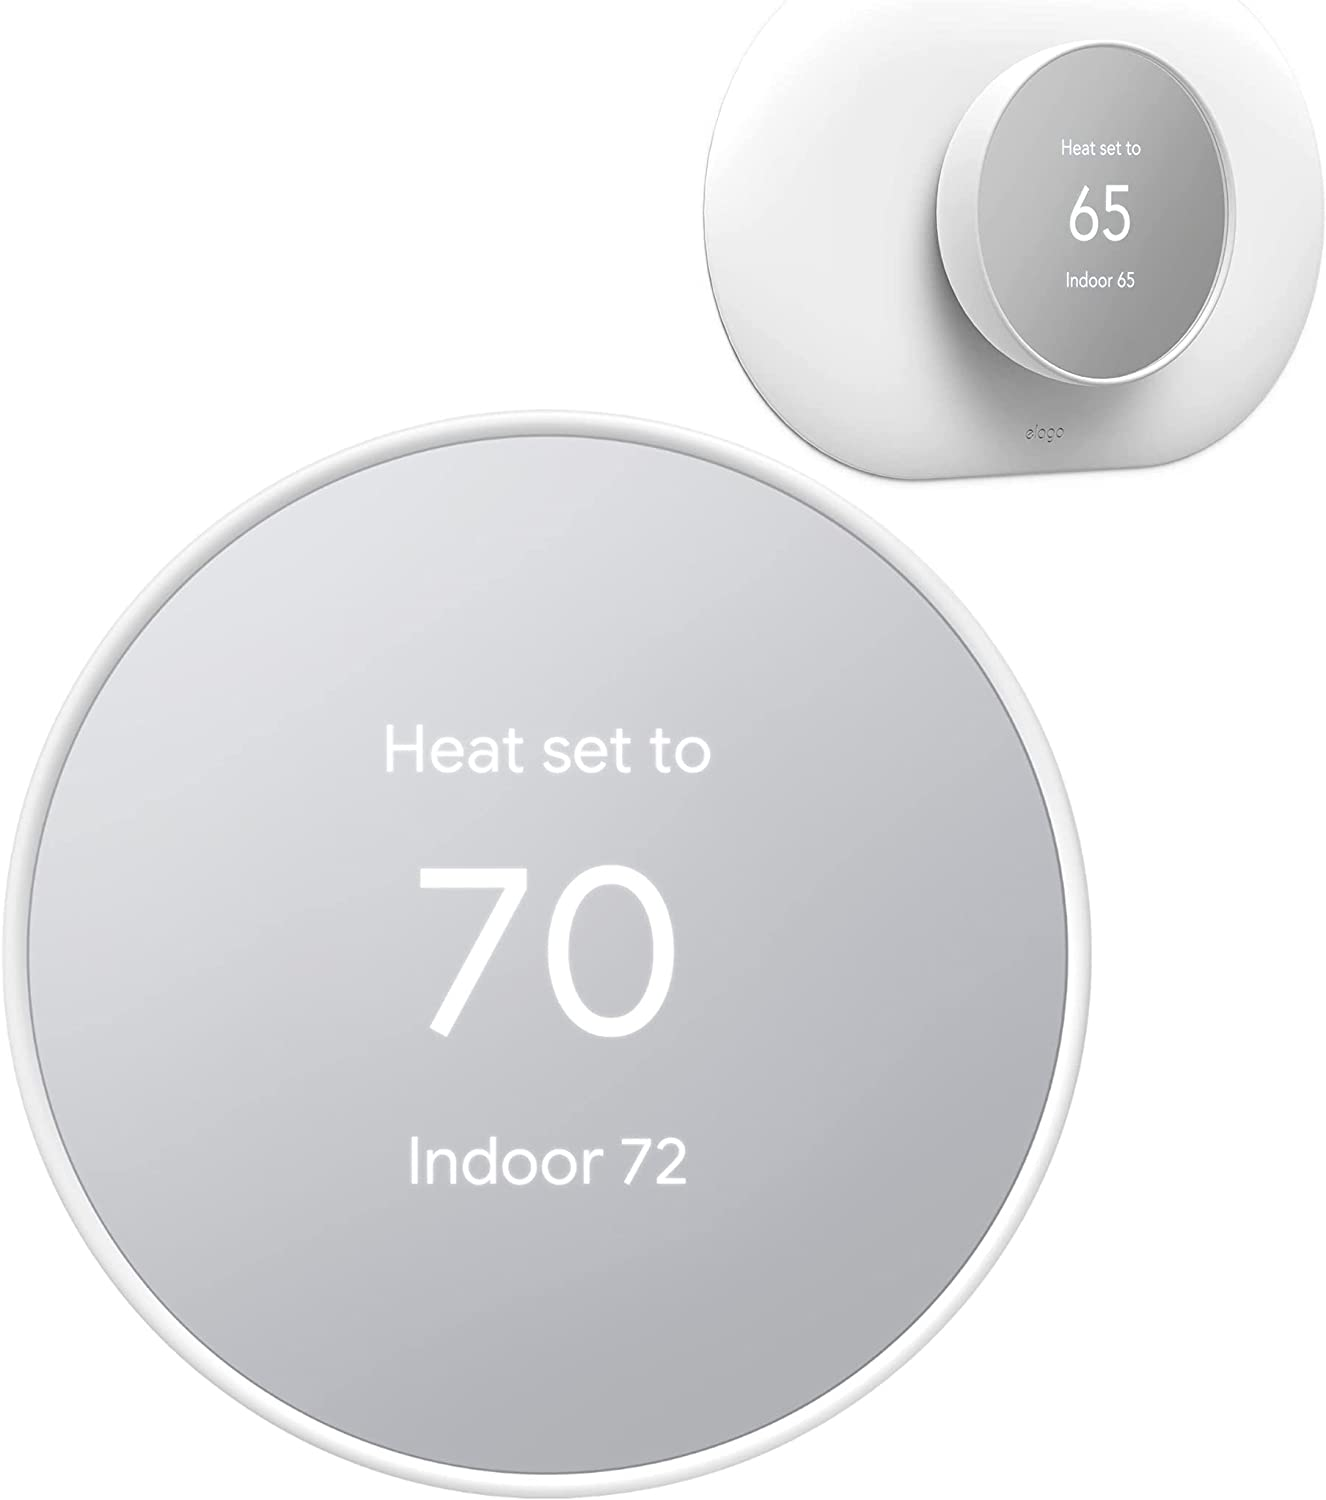 Google Nest Thermostat - Smart Thermostat for Home - Programmable WiFi Thermostat - Snow - GA01334-US Bundle with elago Wall Plate Cover Plus Compatible with Google Nest Thermostat - White